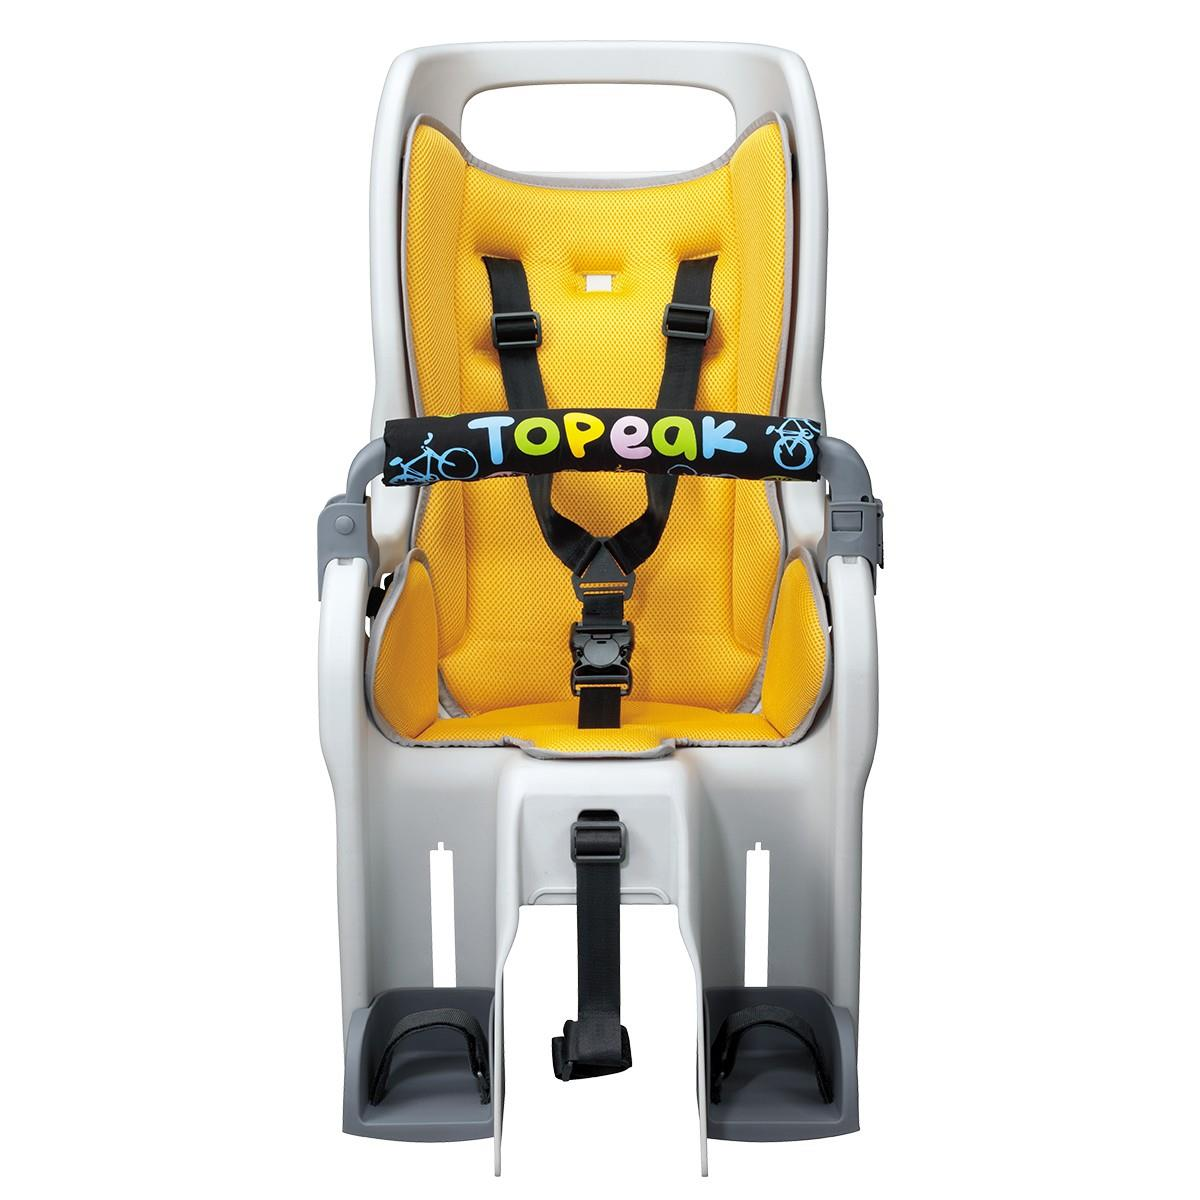 Topeak Babyseat II And Rack For 29